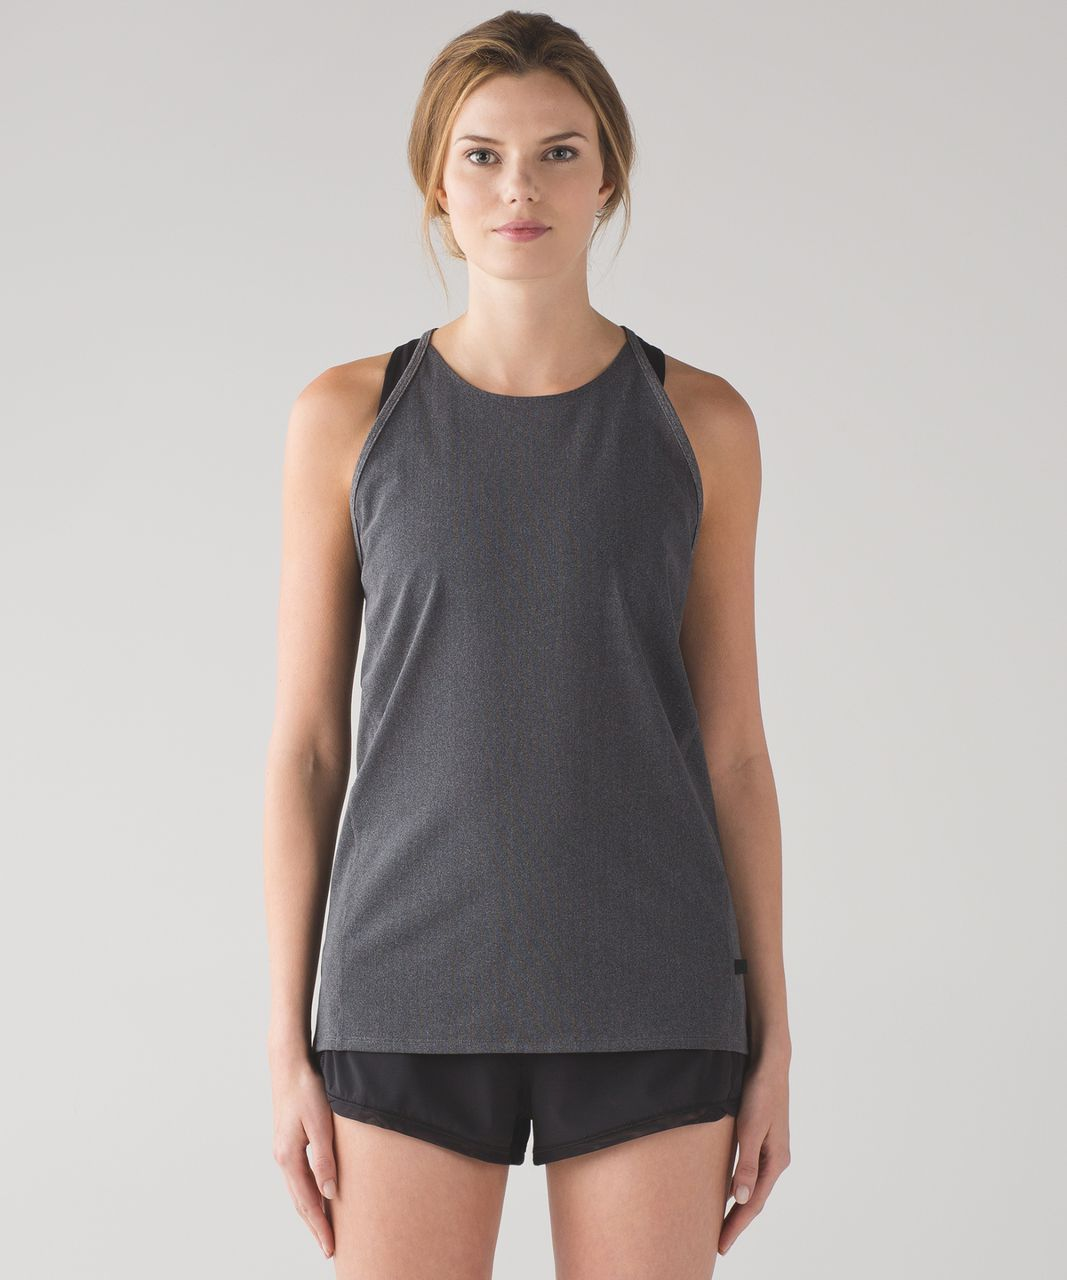 Lululemon Featherlight Singlet Mesh - Heathered Black